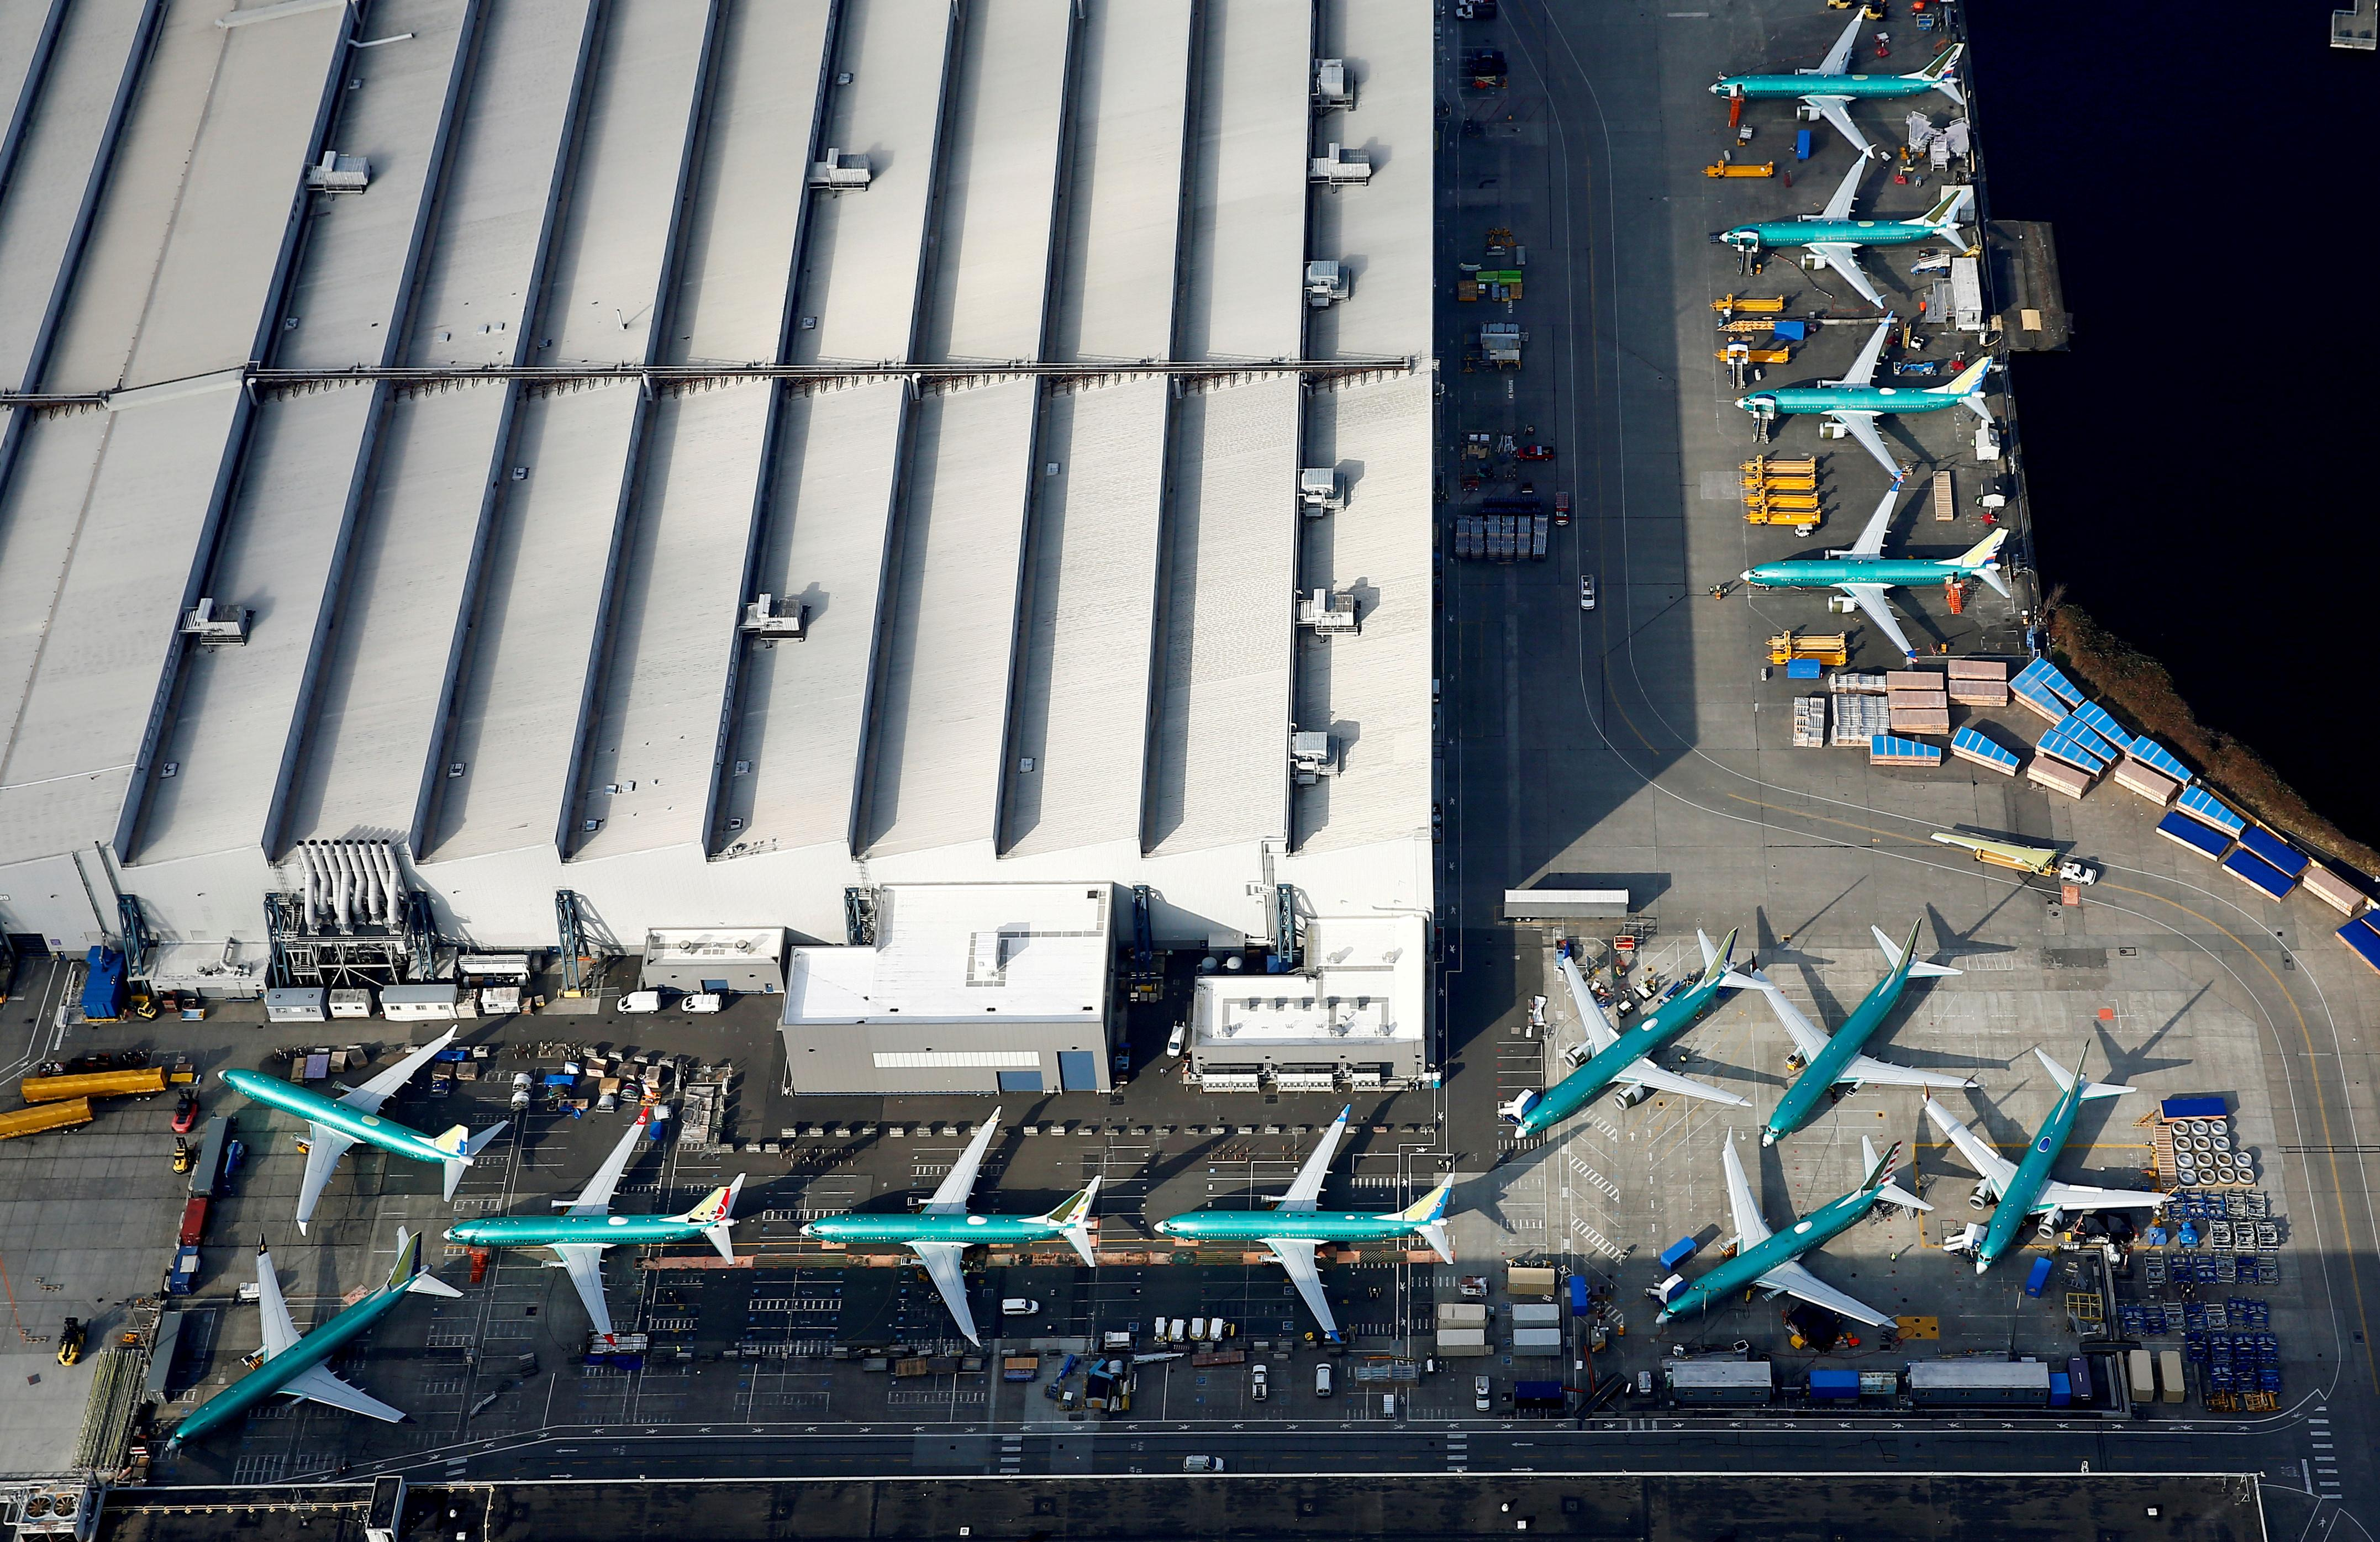 An aerial photo shows Boeing 737 MAX airplanes parked on the tarmac at the Boeing Factory in Renton, Washington, U.S. March 21, 2019. Lindsey Wasson